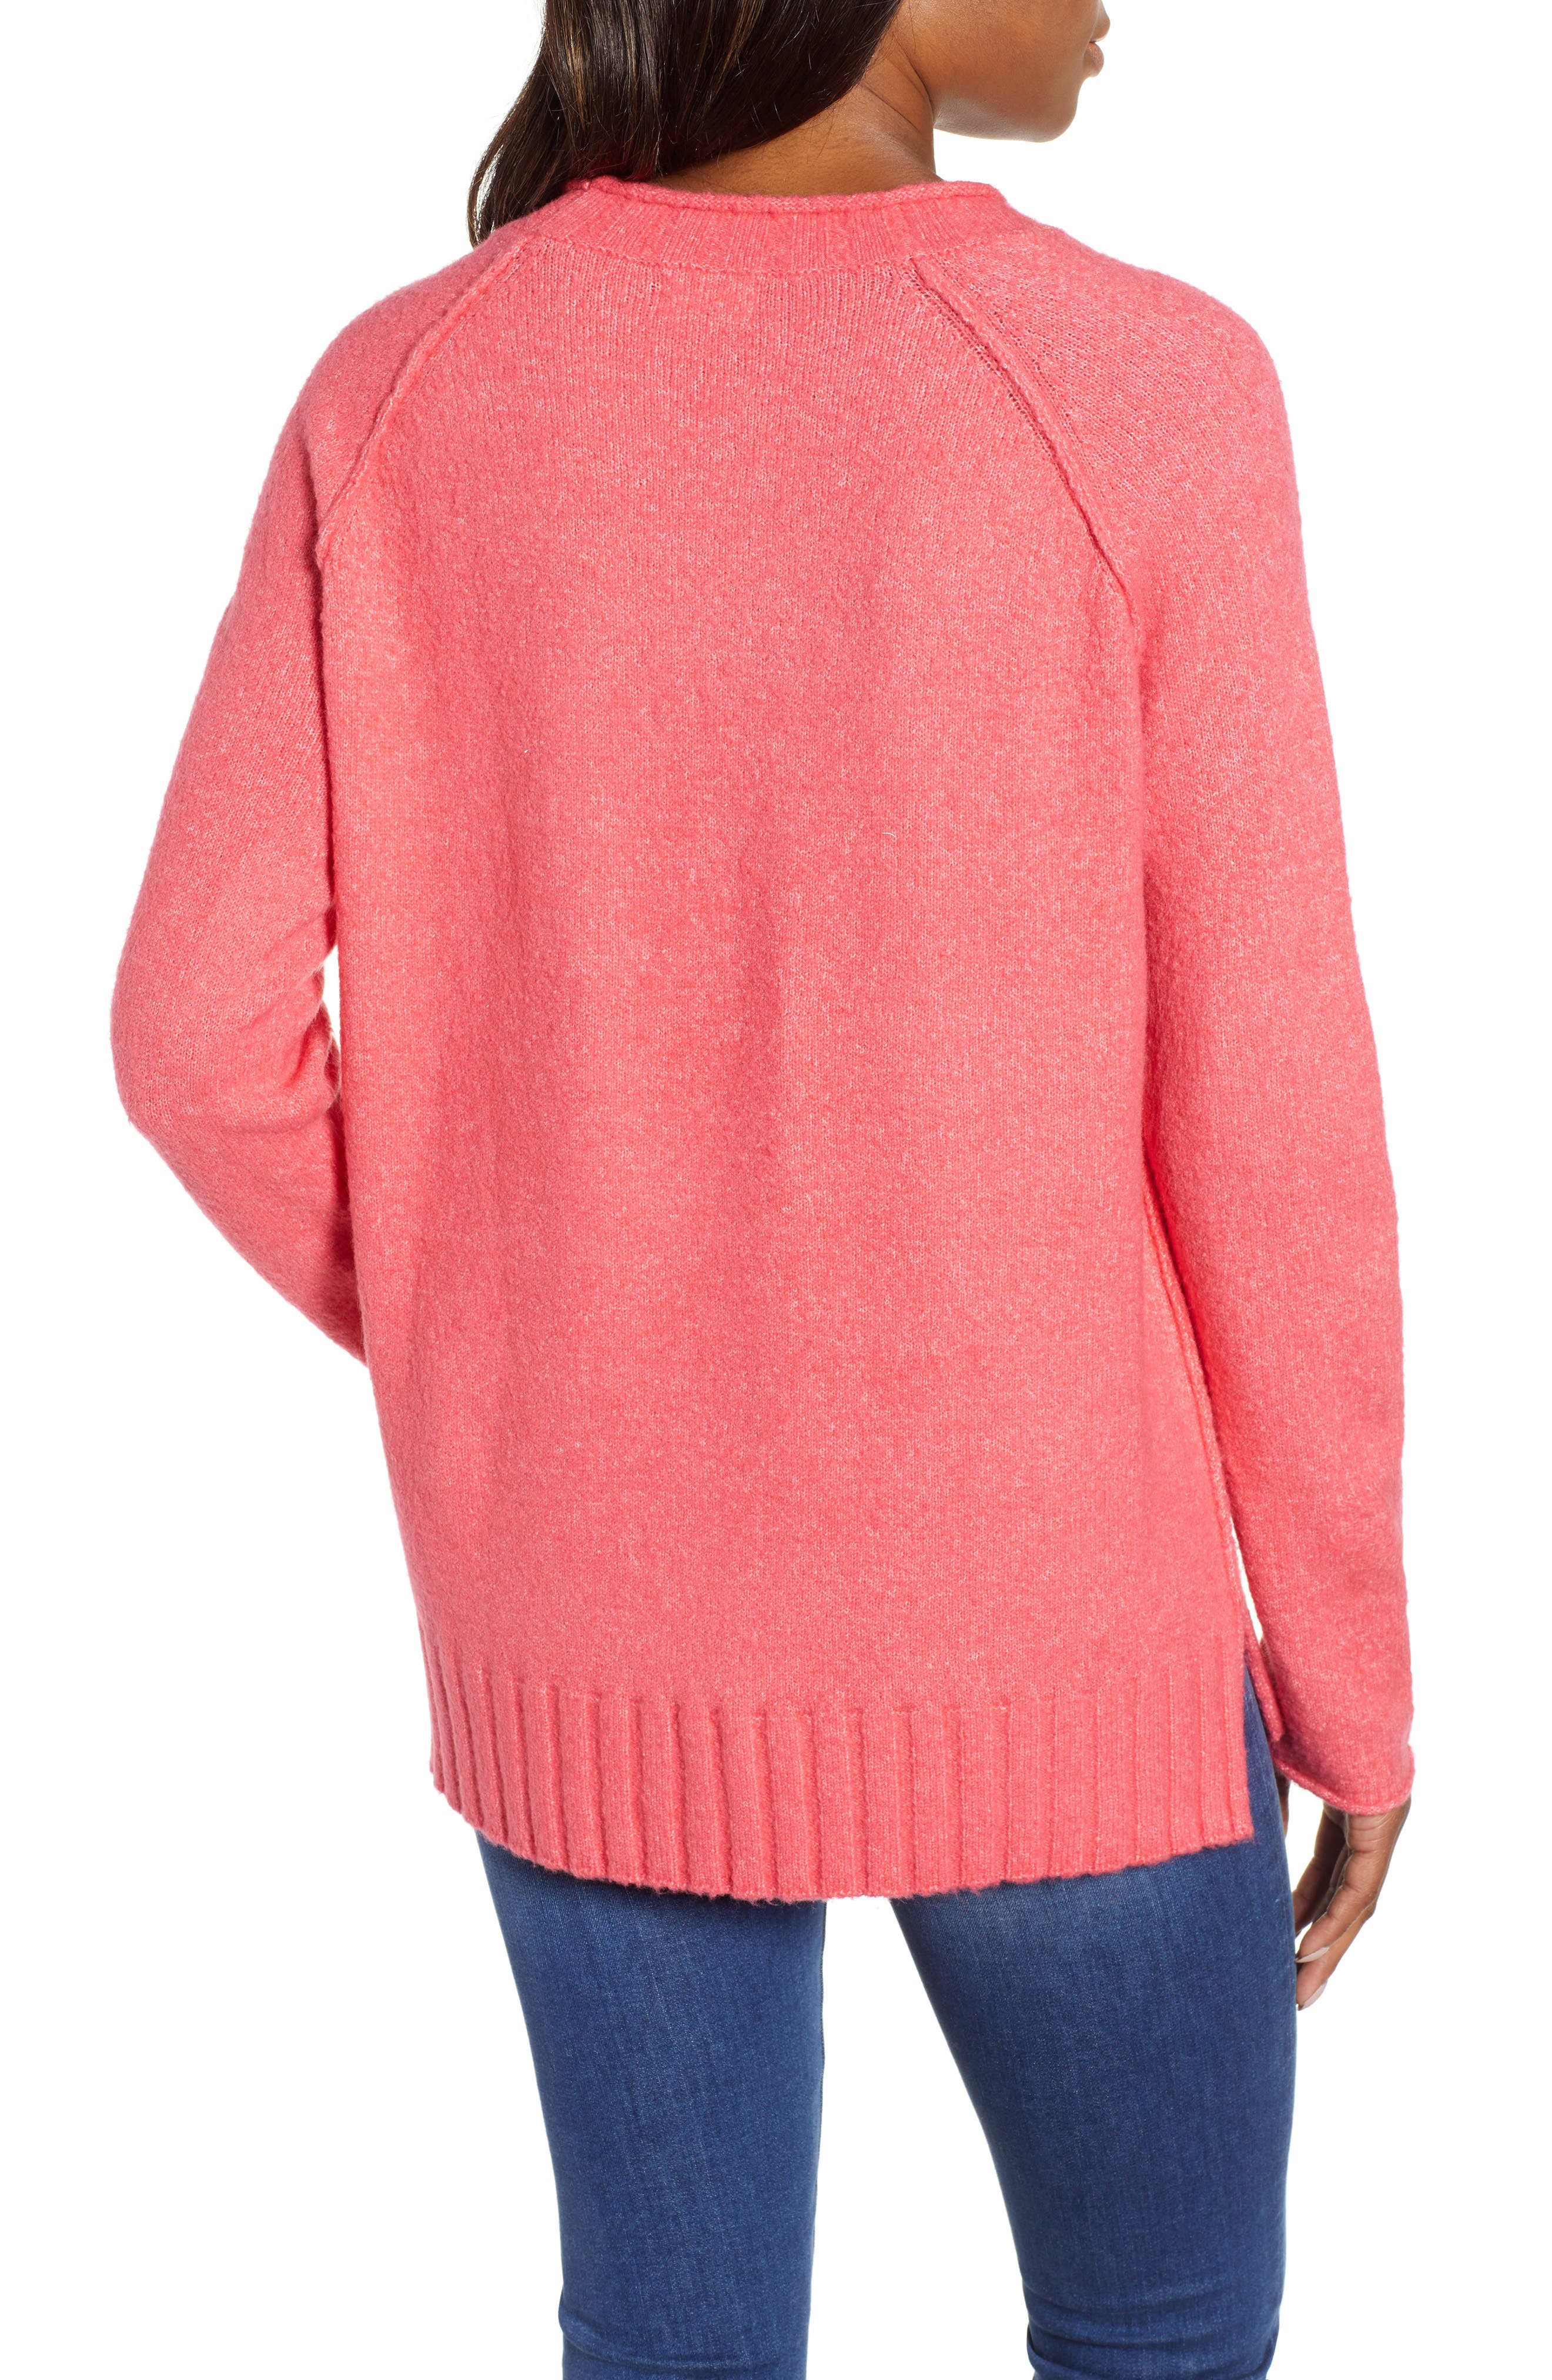 Cozy Crewneck Sweater,                             Alternate thumbnail 2, color,                             PINK HONEY